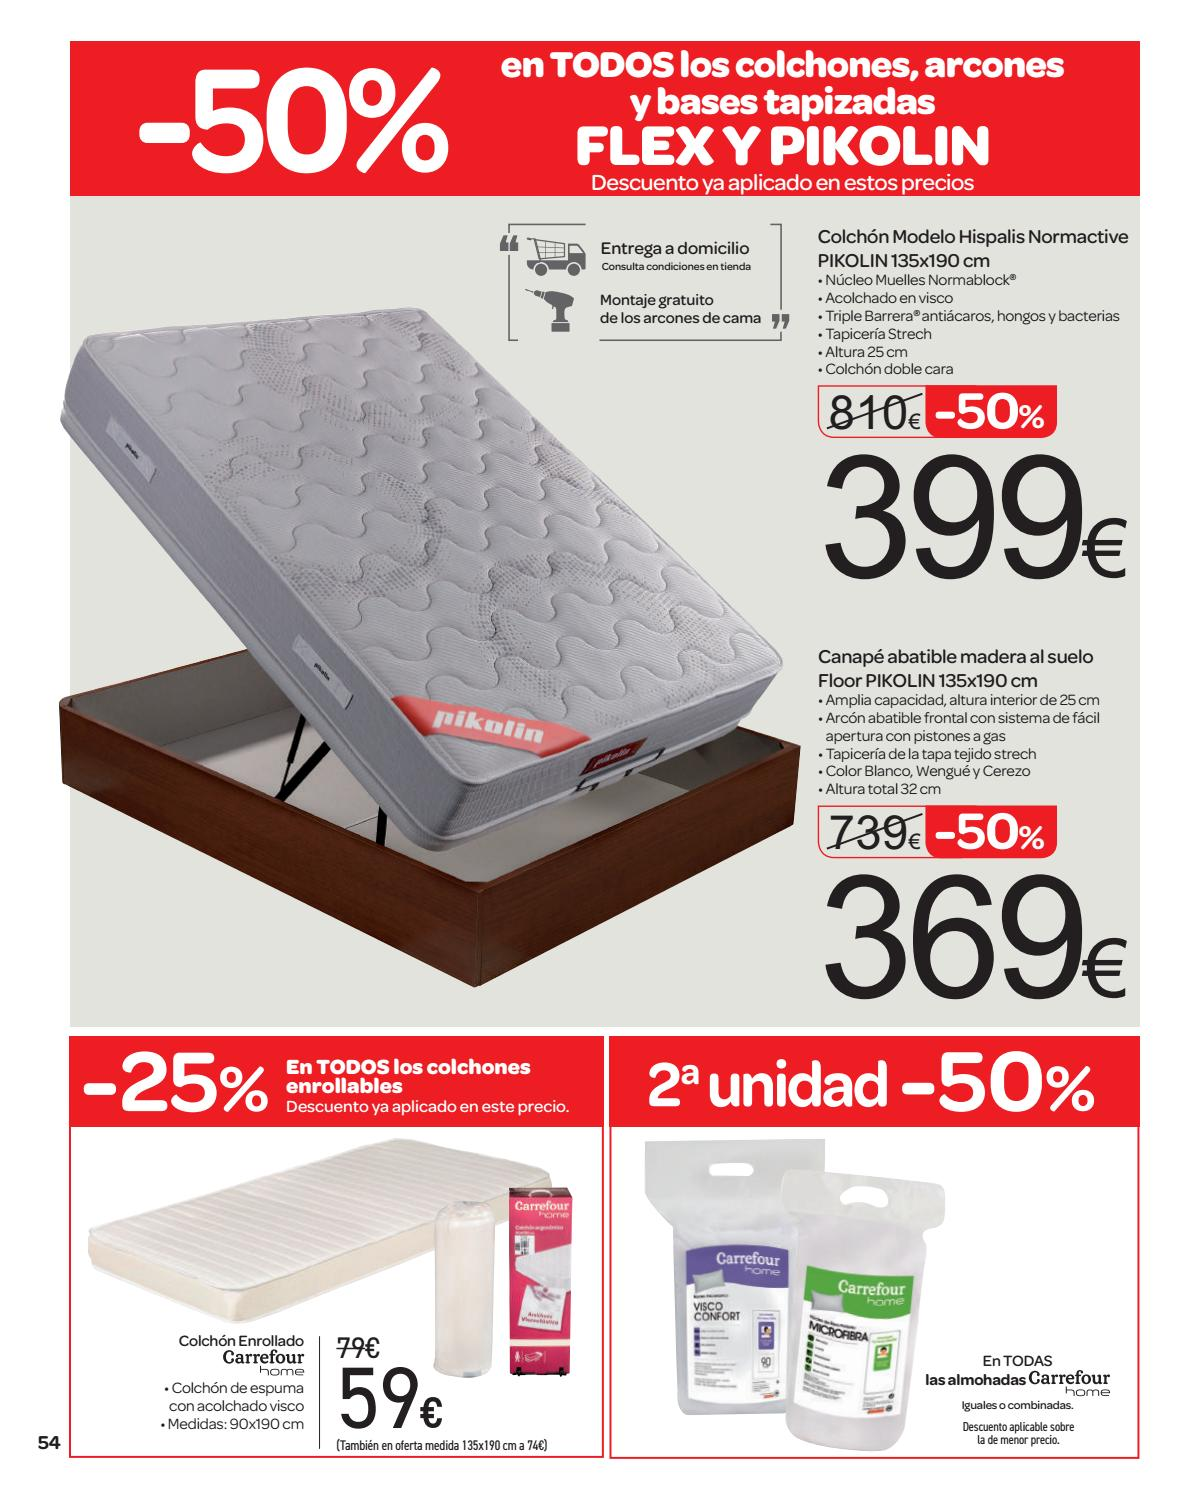 50 en la 2a unidad en carrefour by ofertas supermercados for Barrera cama carrefour